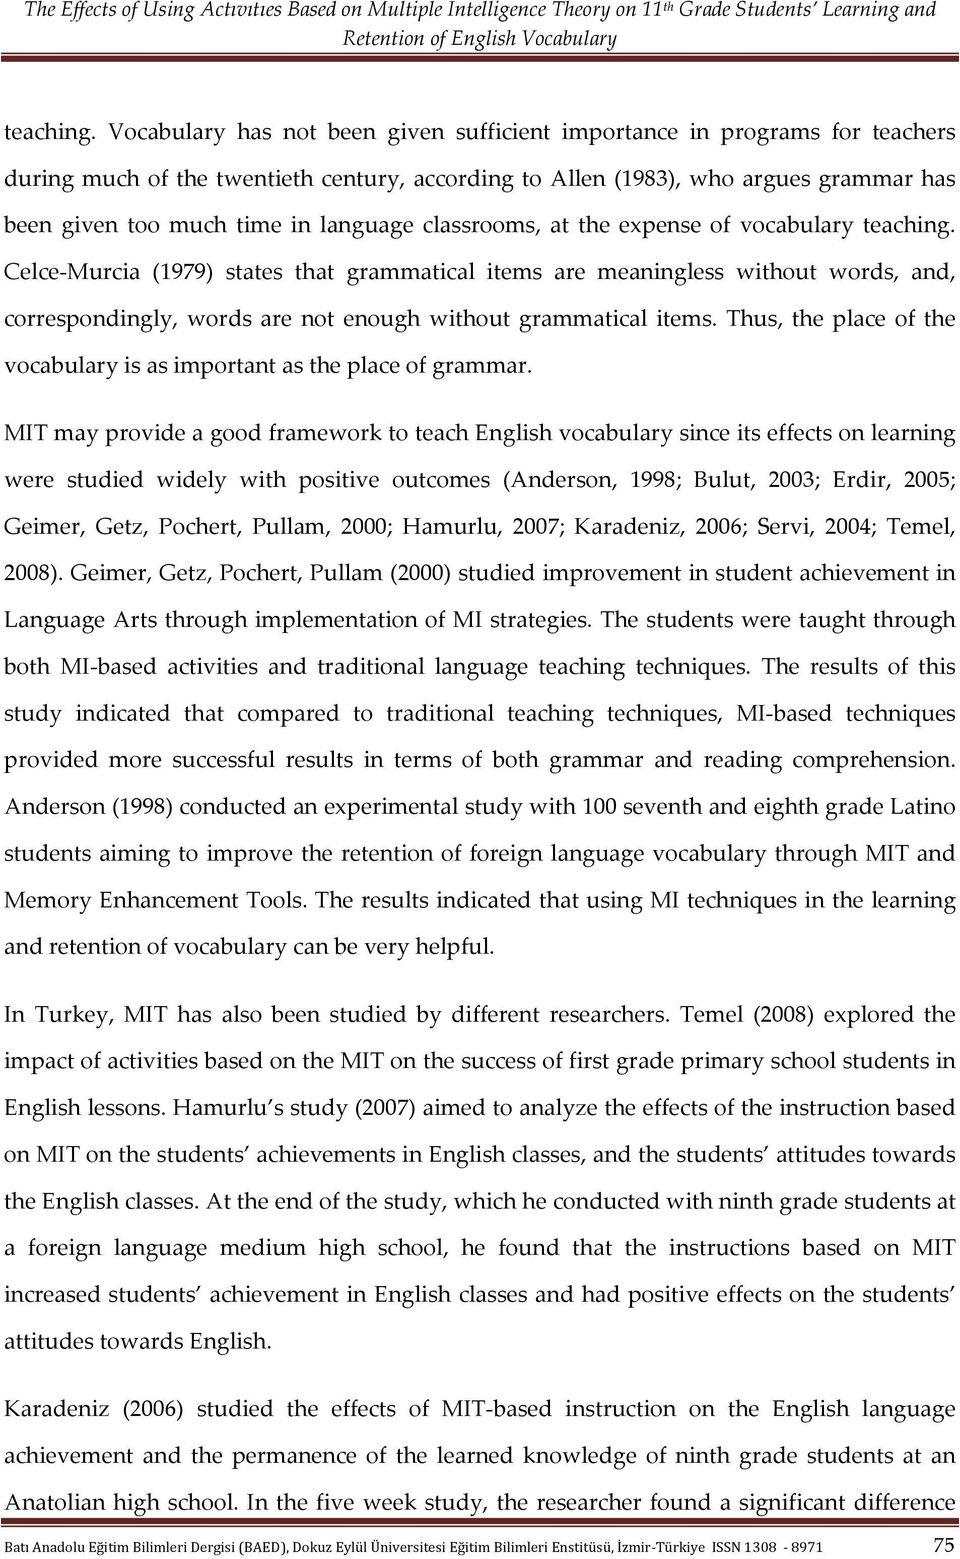 language classrooms, at the expense of vocabulary  Celce- Murcia (1979) states that grammatical items are meaningless without words, and, correspondingly, words are not enough without grammatical